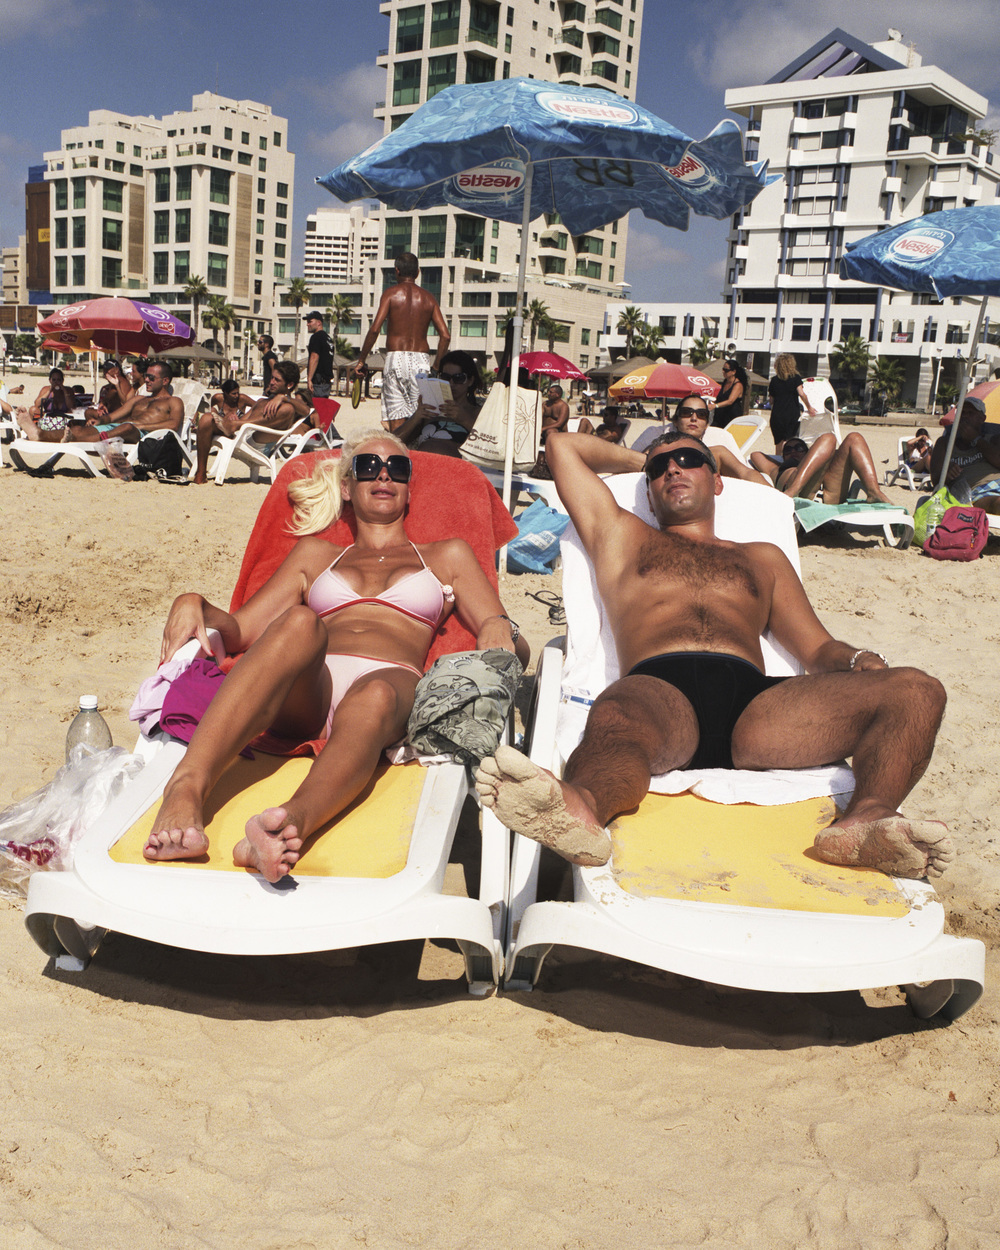 Couple Sunbathing, 2011